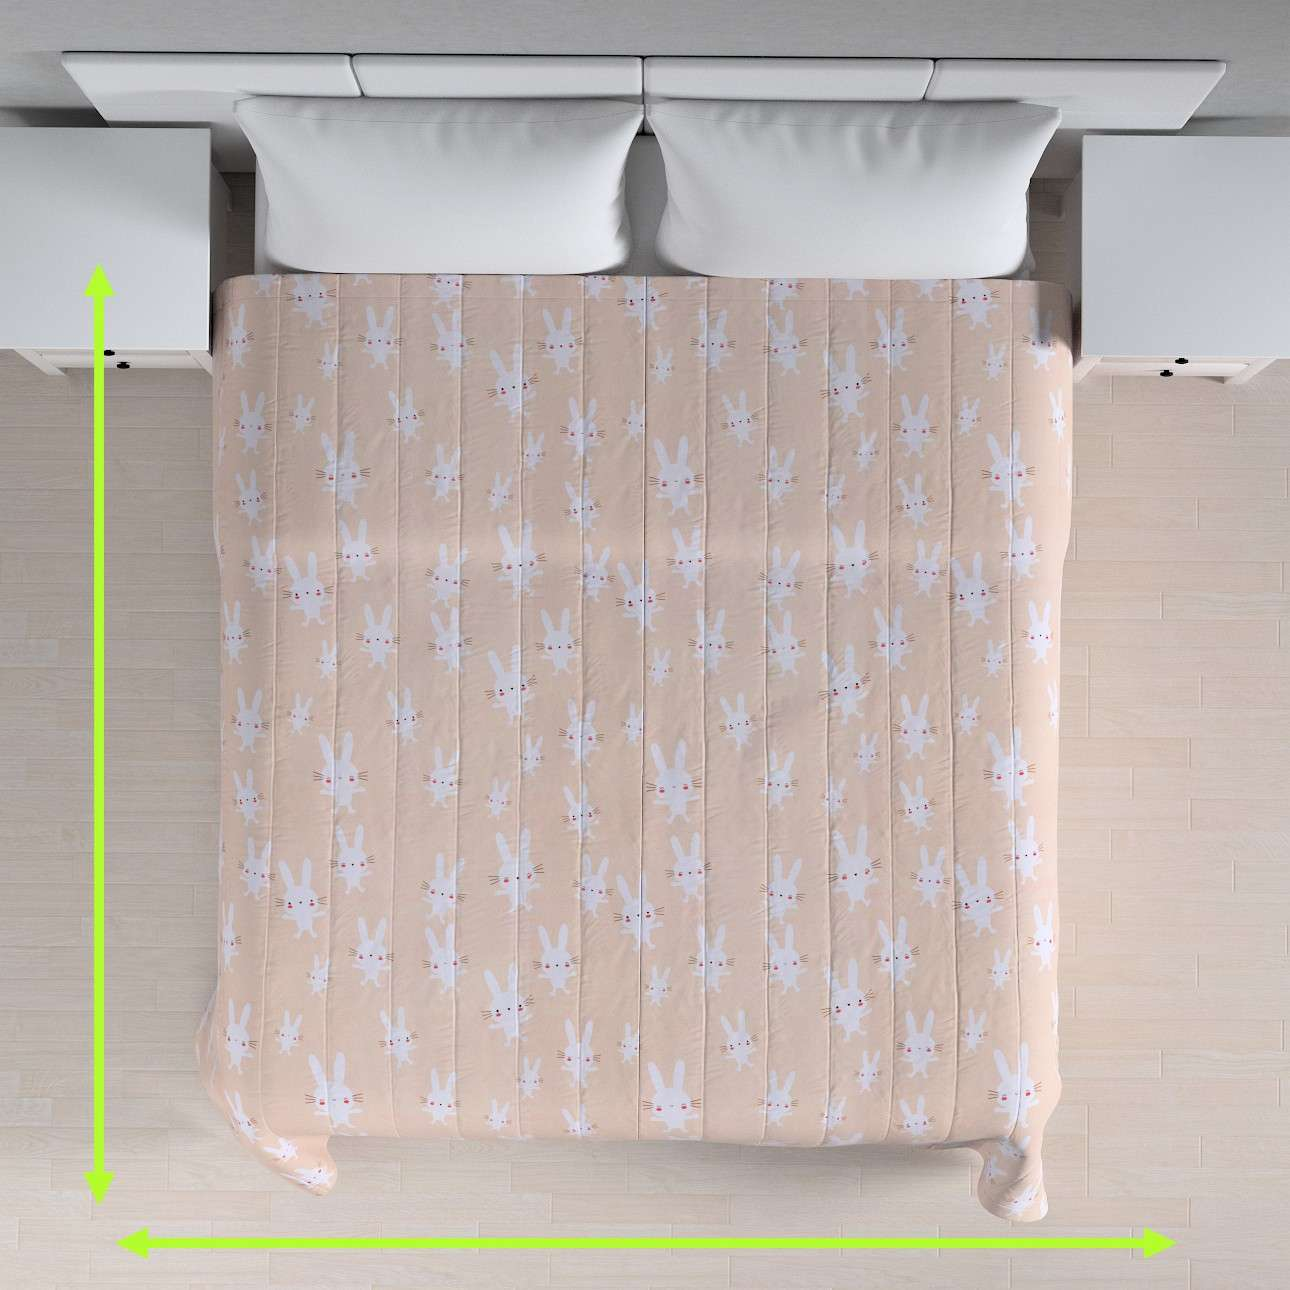 Quilted throw (vertical quilt pattern) in collection Apanona, fabric: 151-00